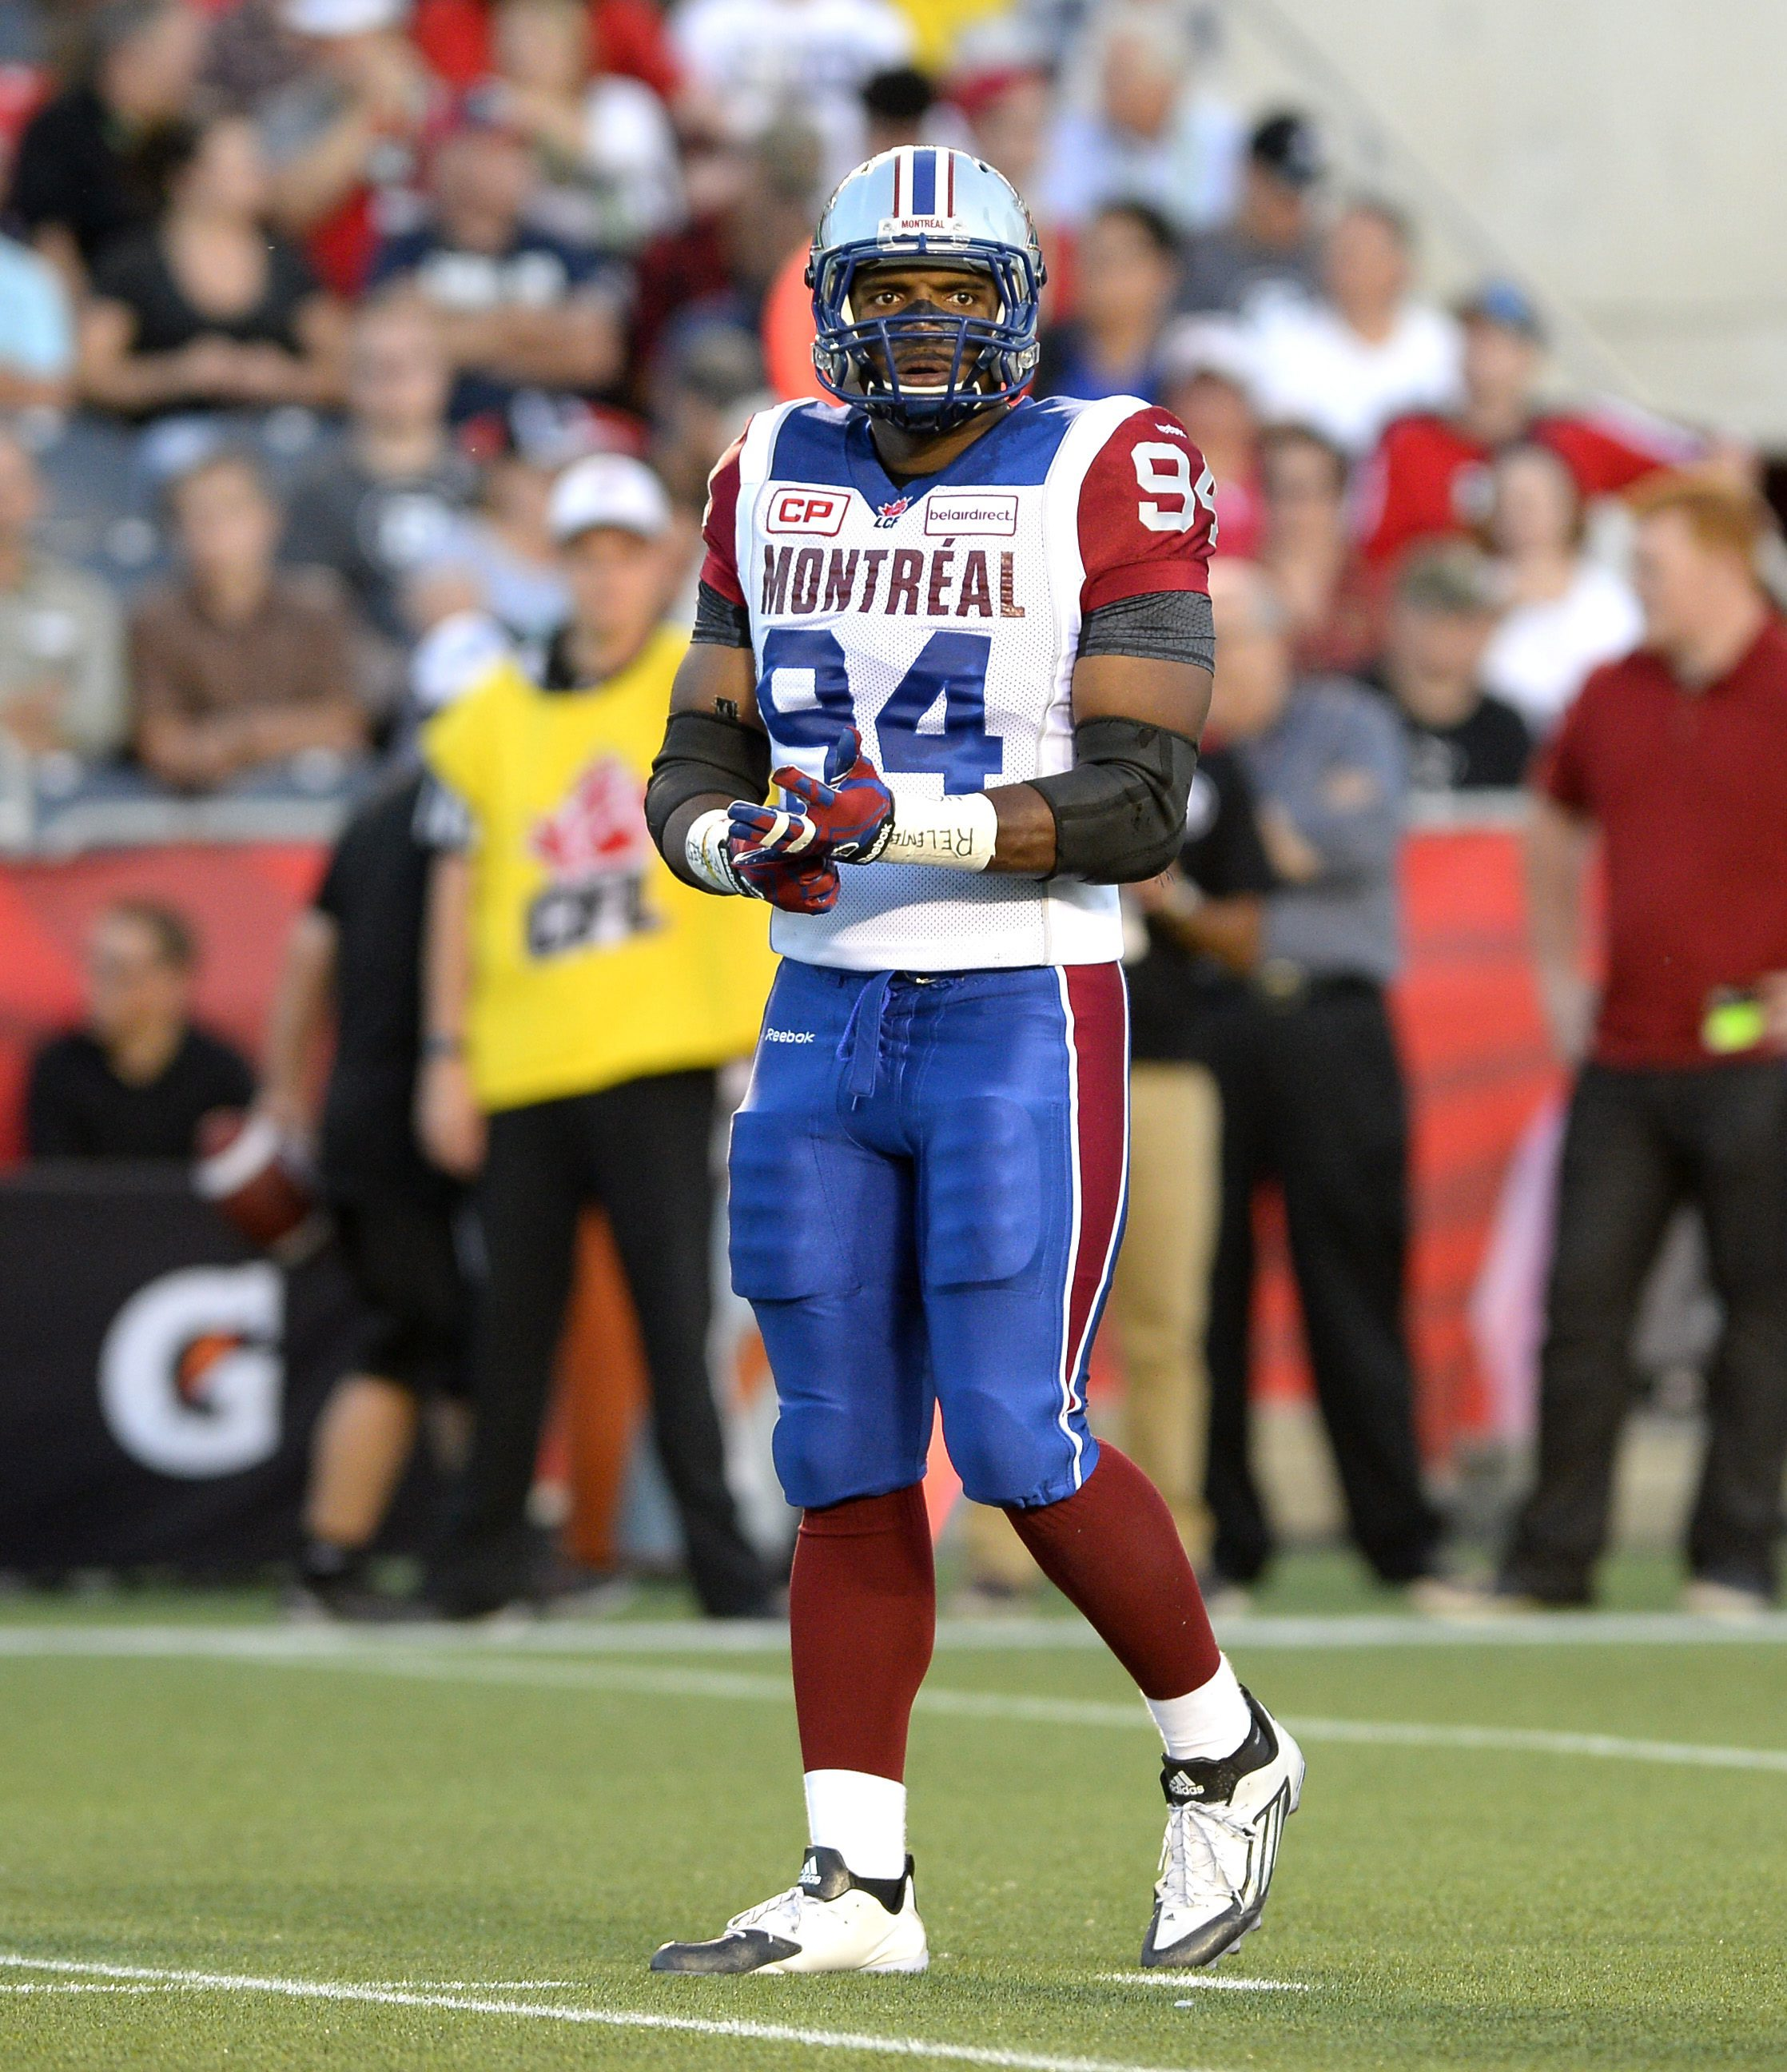 Montreal Alouettes' Michael Sam takes to the field for the Alouettes' Canadian Football League game against the Ottawa Redblacks on Friday, Aug. 7, 2015, in Ottawa, Ontario. (Justin Tang/The Canadian Press via AP)